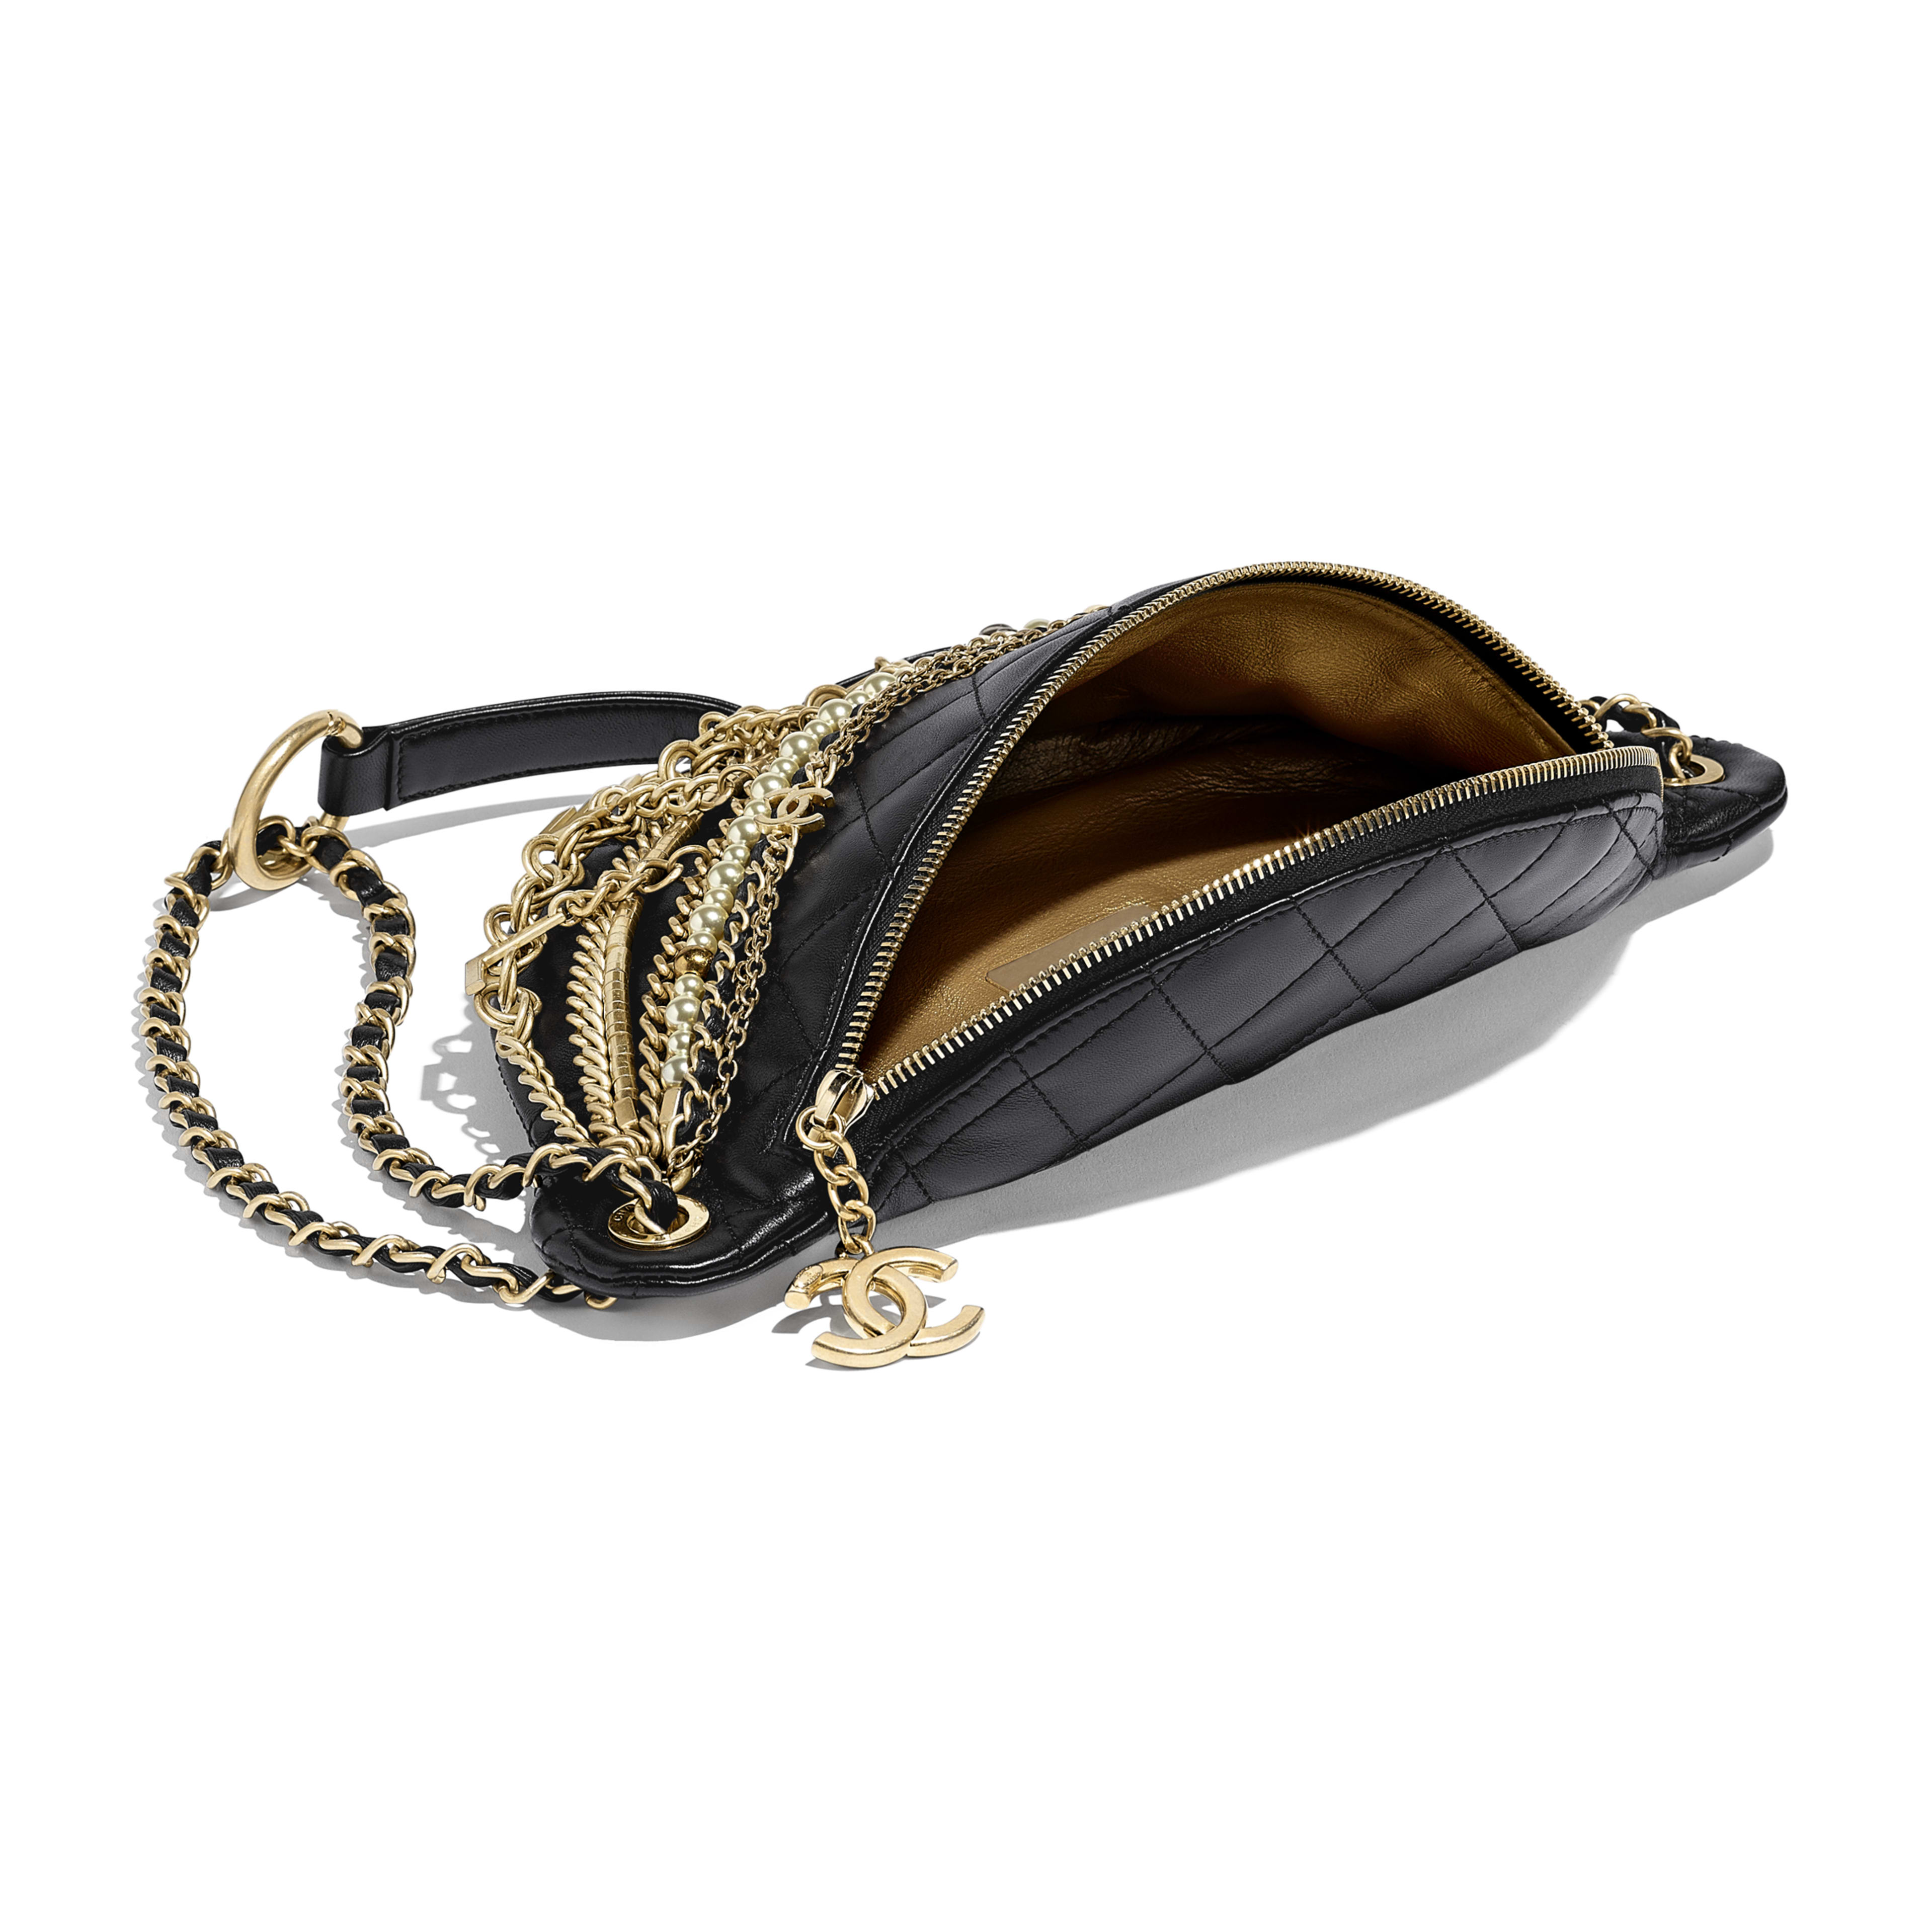 Waist Bag - Black - Lambskin, Gold-Tone & Silver-Tone Metal - Other view - see full sized version